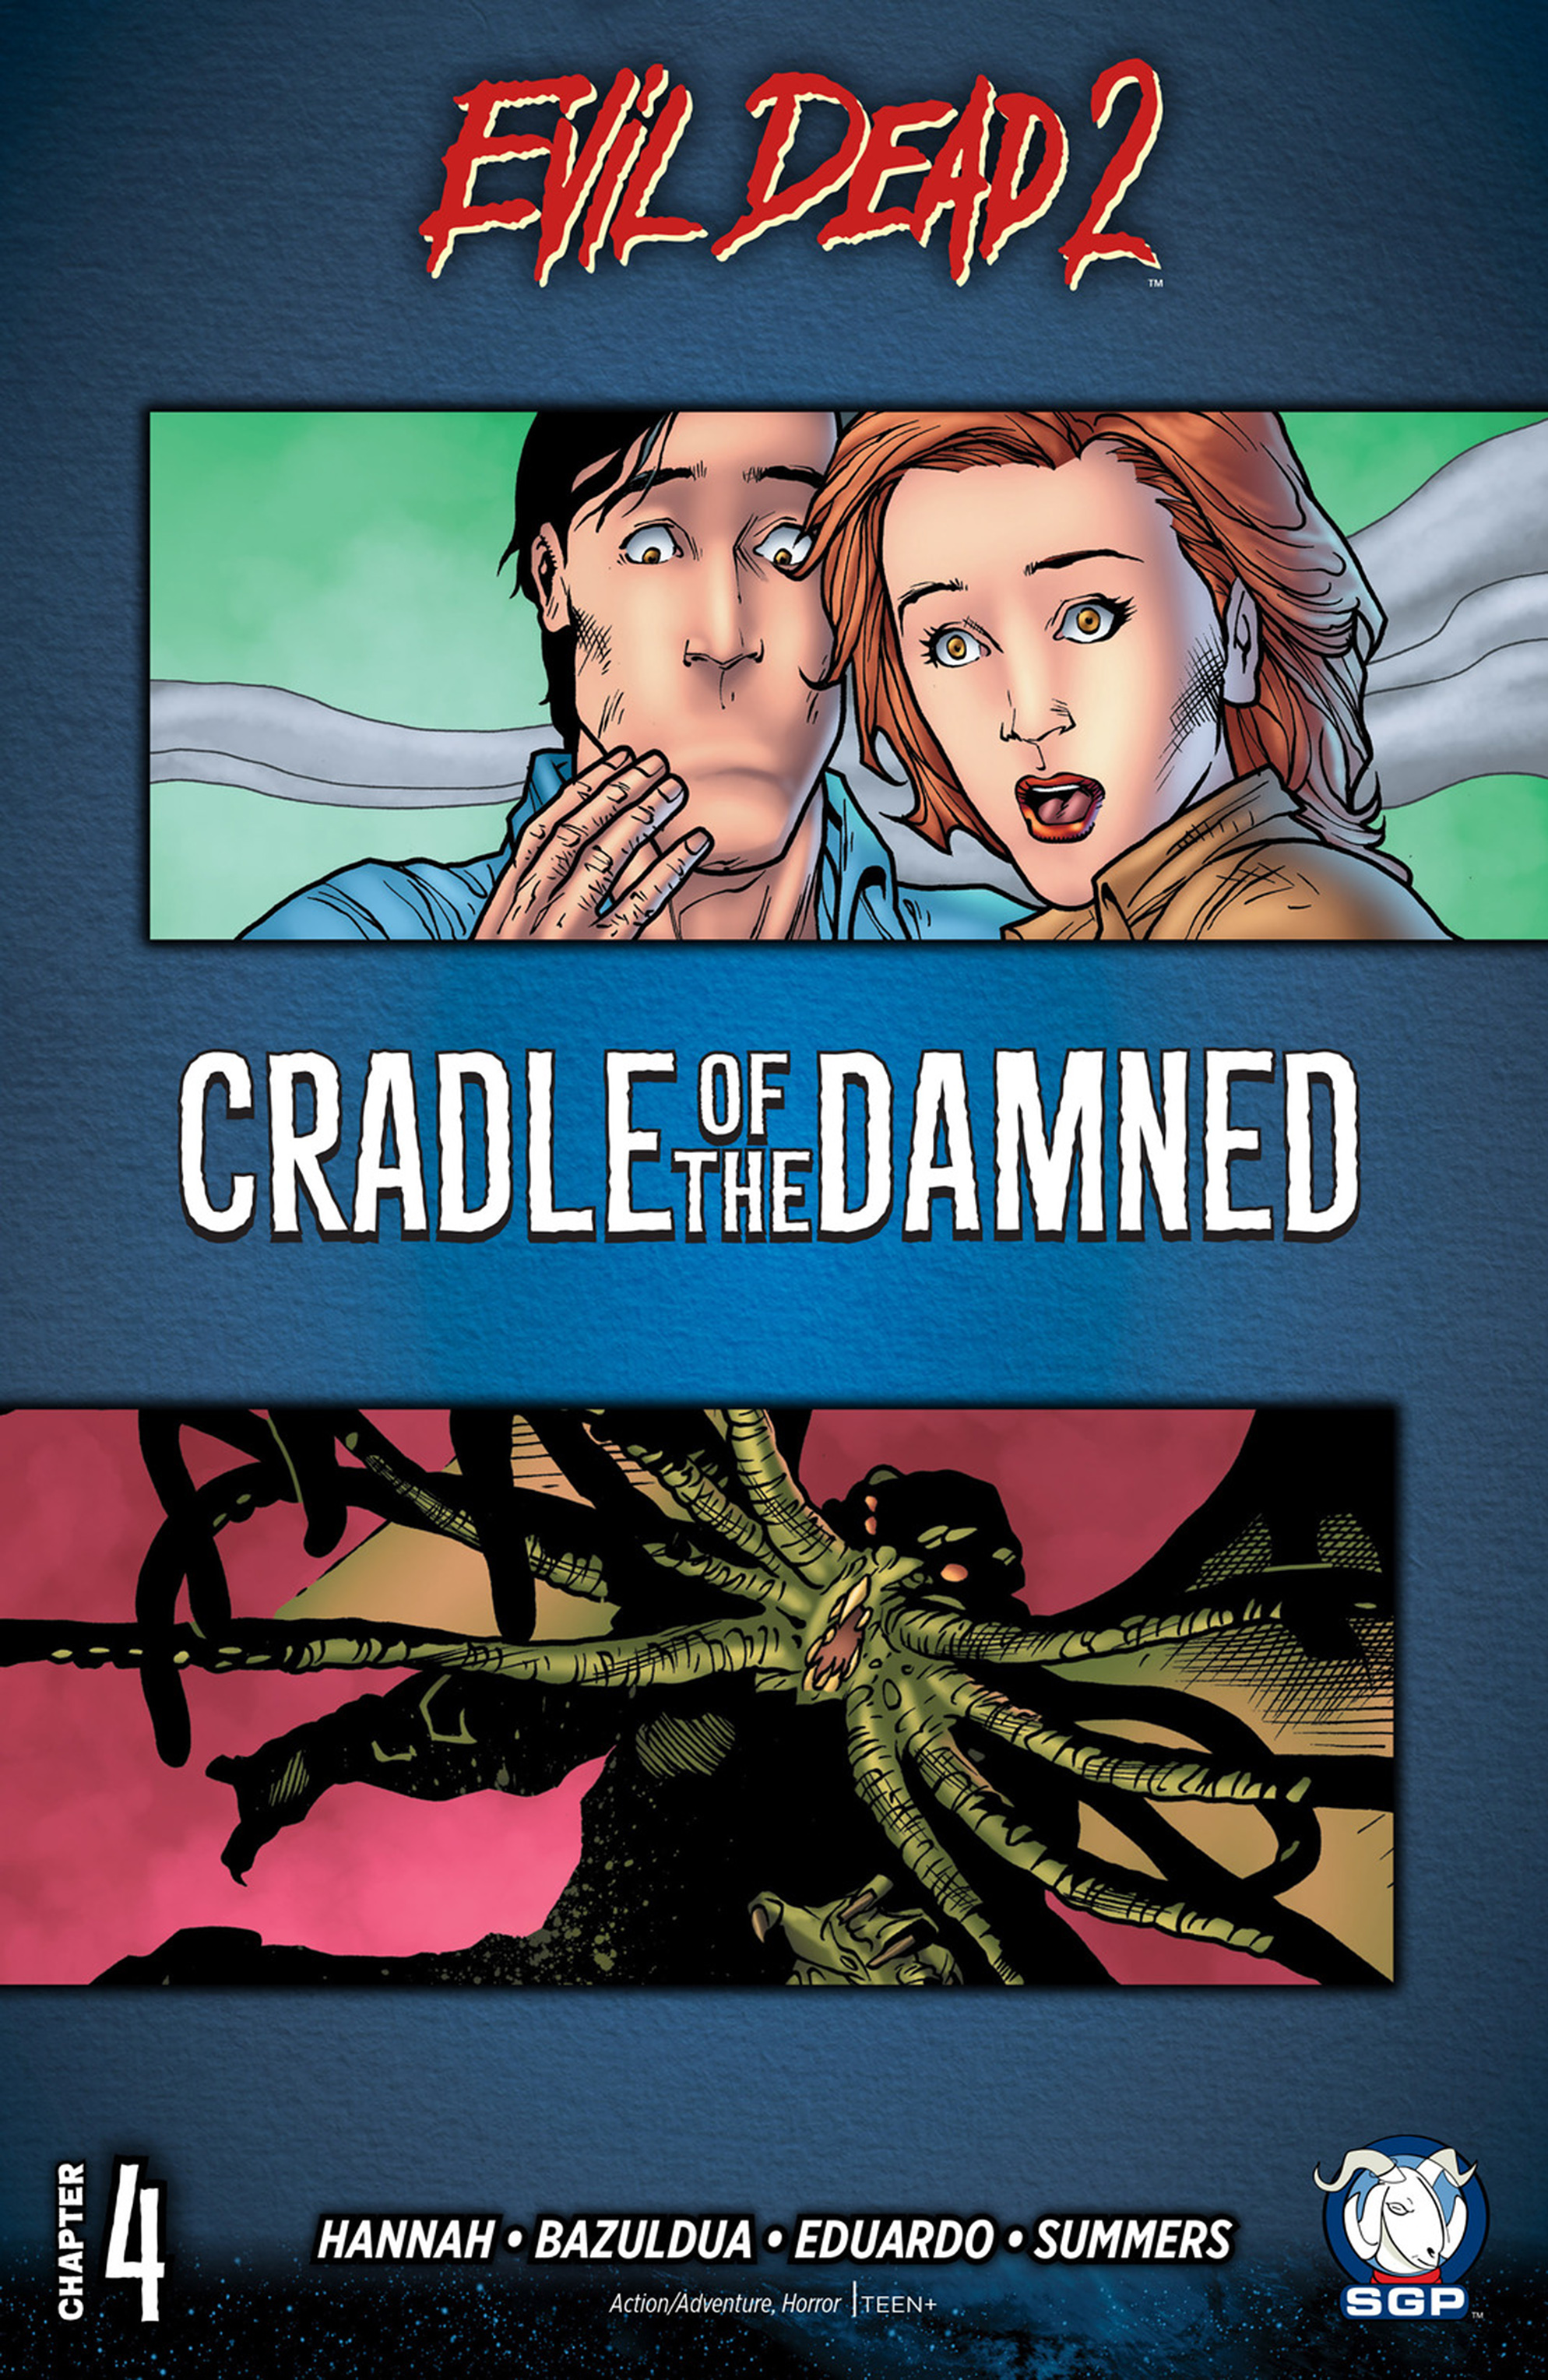 Read online Evil Dead 2: Cradle of the Damned comic -  Issue #4 - 1